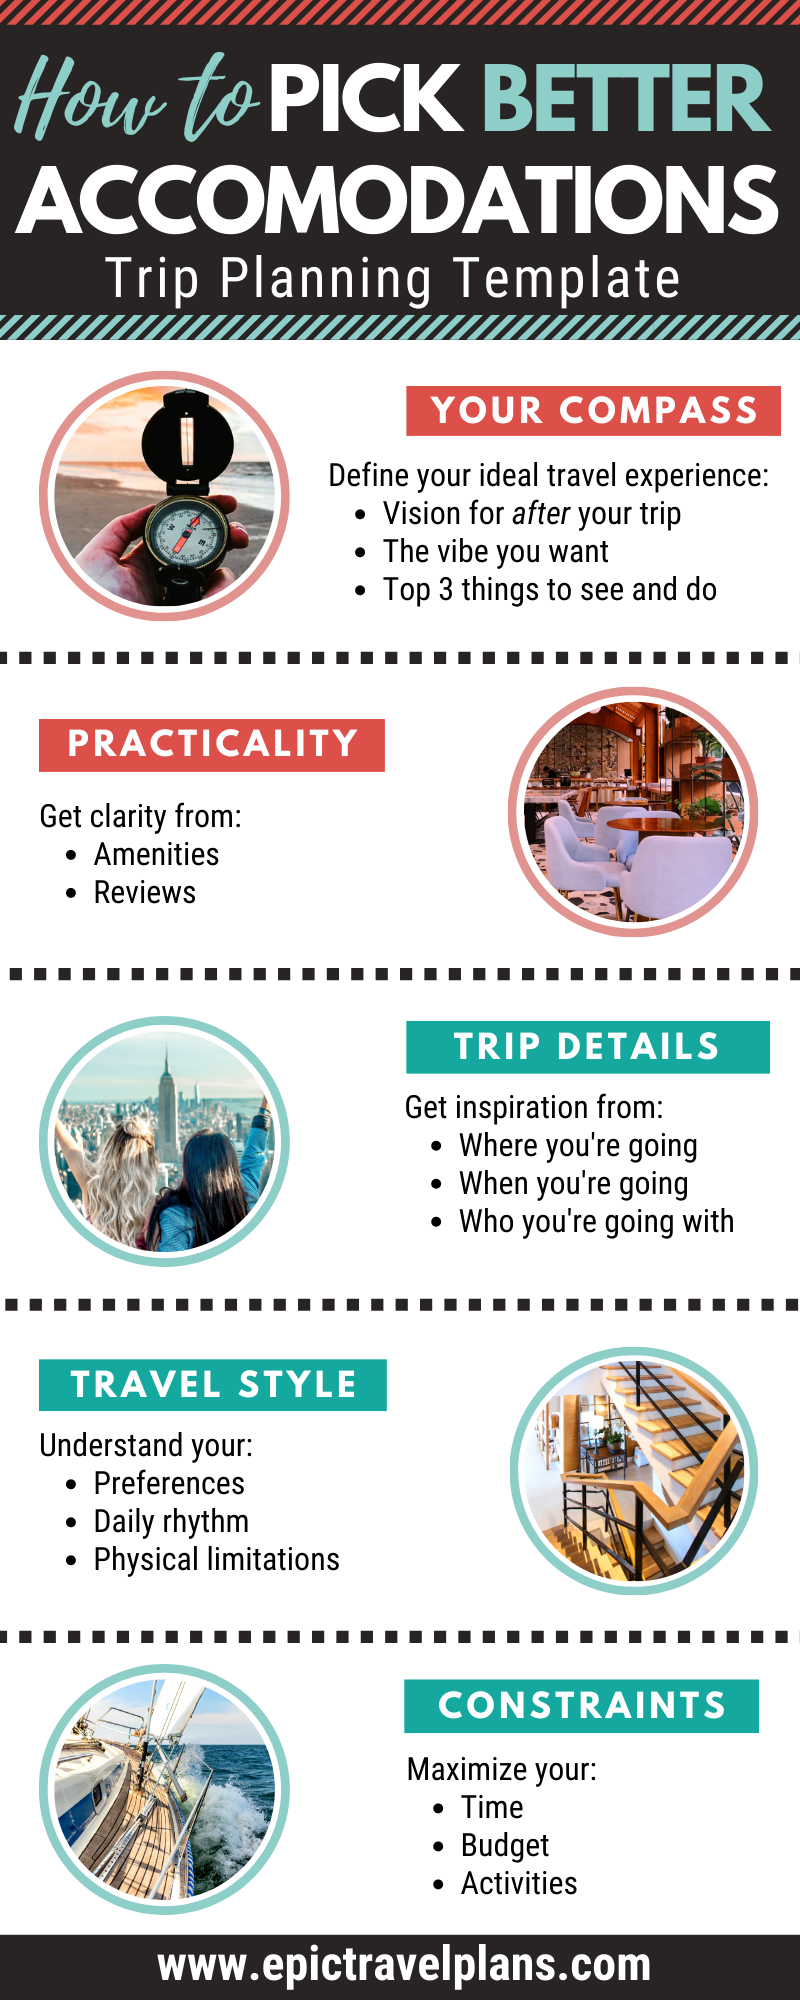 How to pick better accommodations, trip planning tips infographic